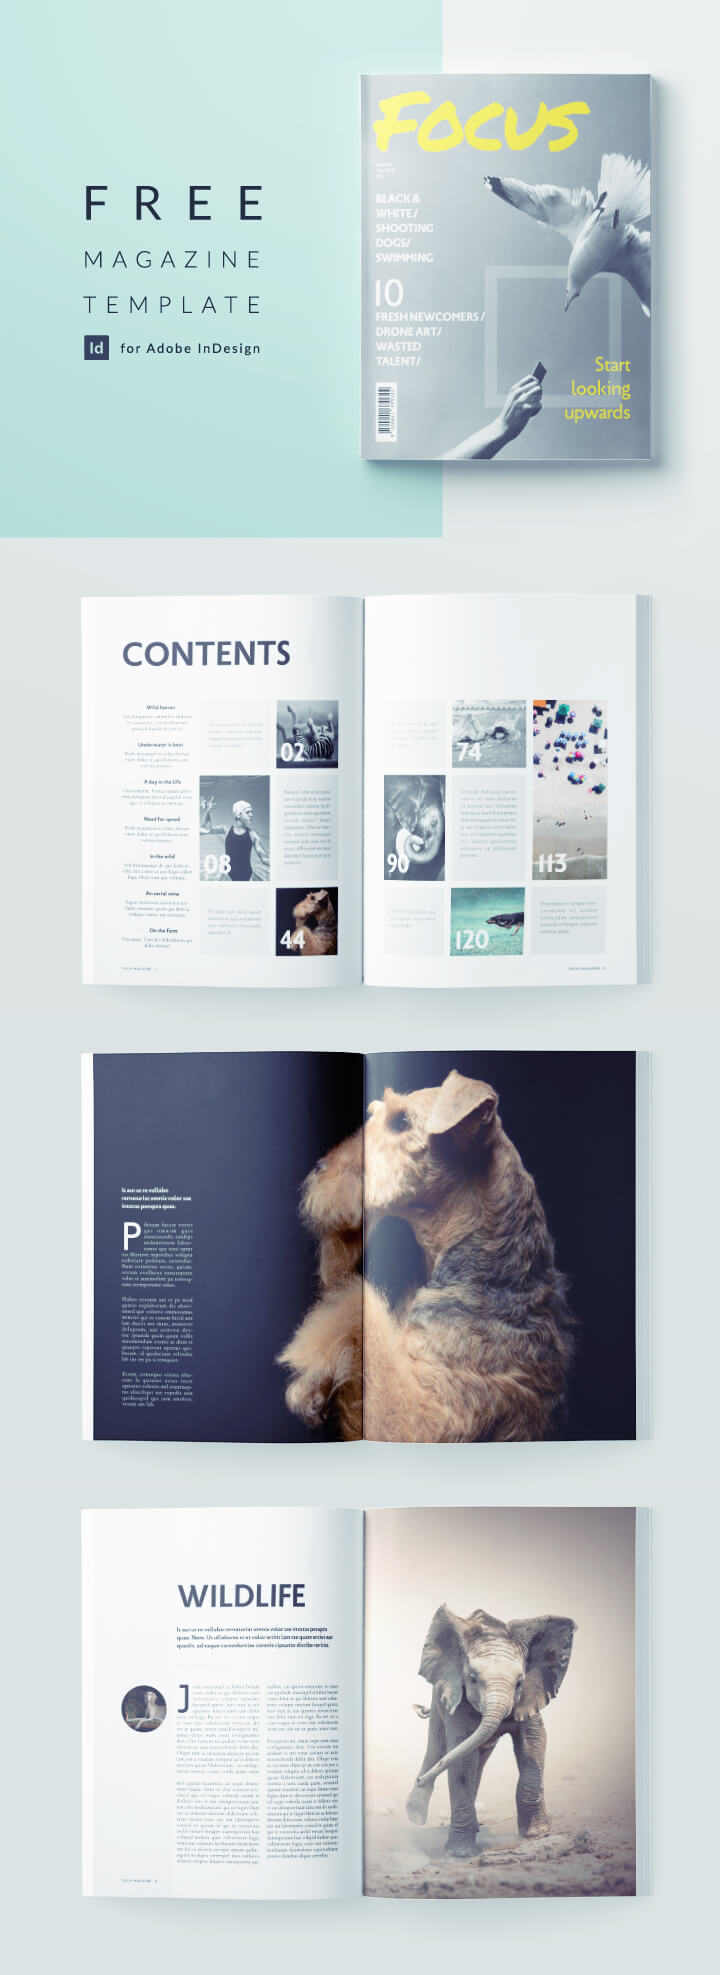 free indesign magazine template - download this professionally designed template for an indesign photography magazine